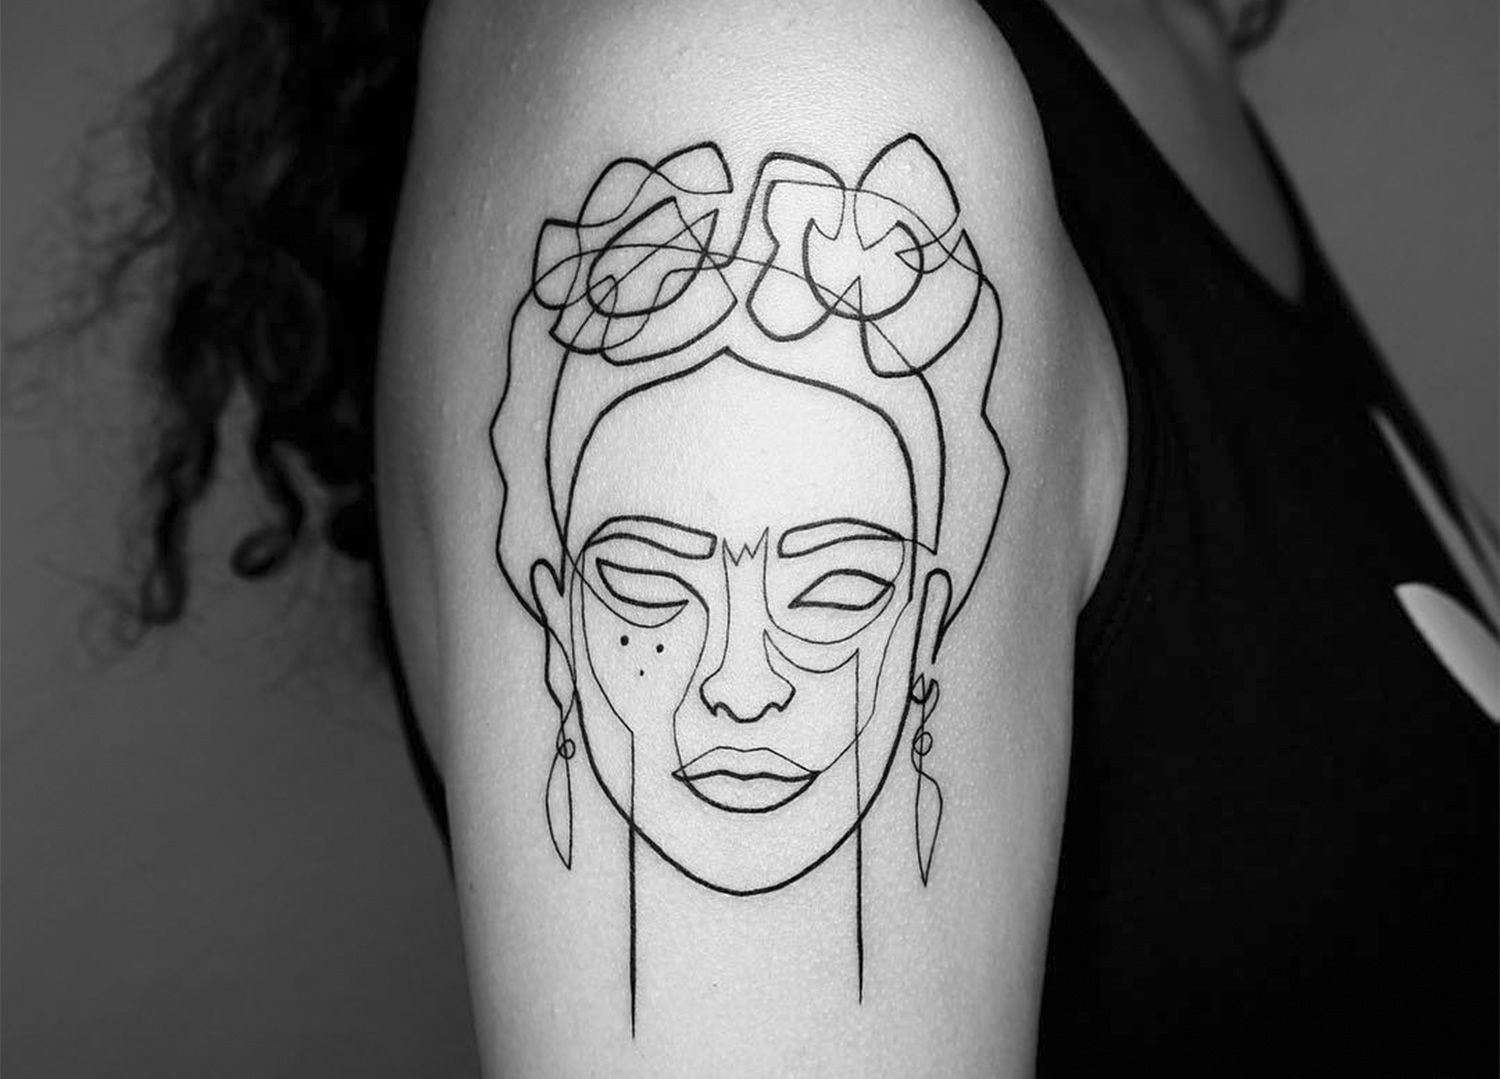 Line Drawing Face Tattoo : Artists creating powerful tattoos using only lines frida